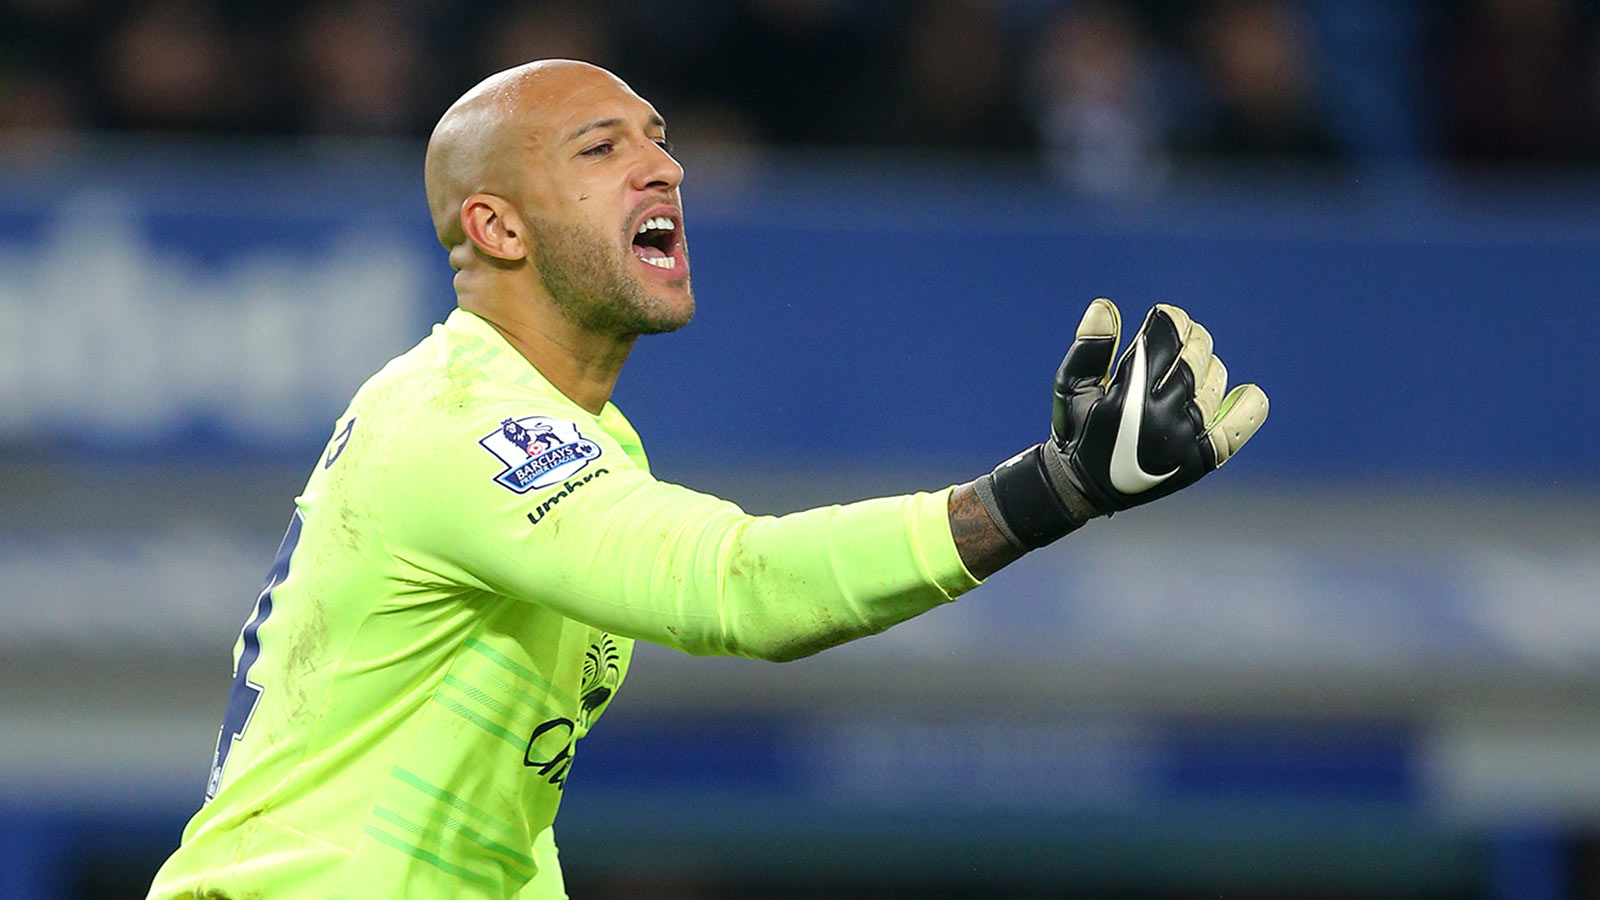 How much are the Colorado Rapids paying Tim Howard and is it worth it?